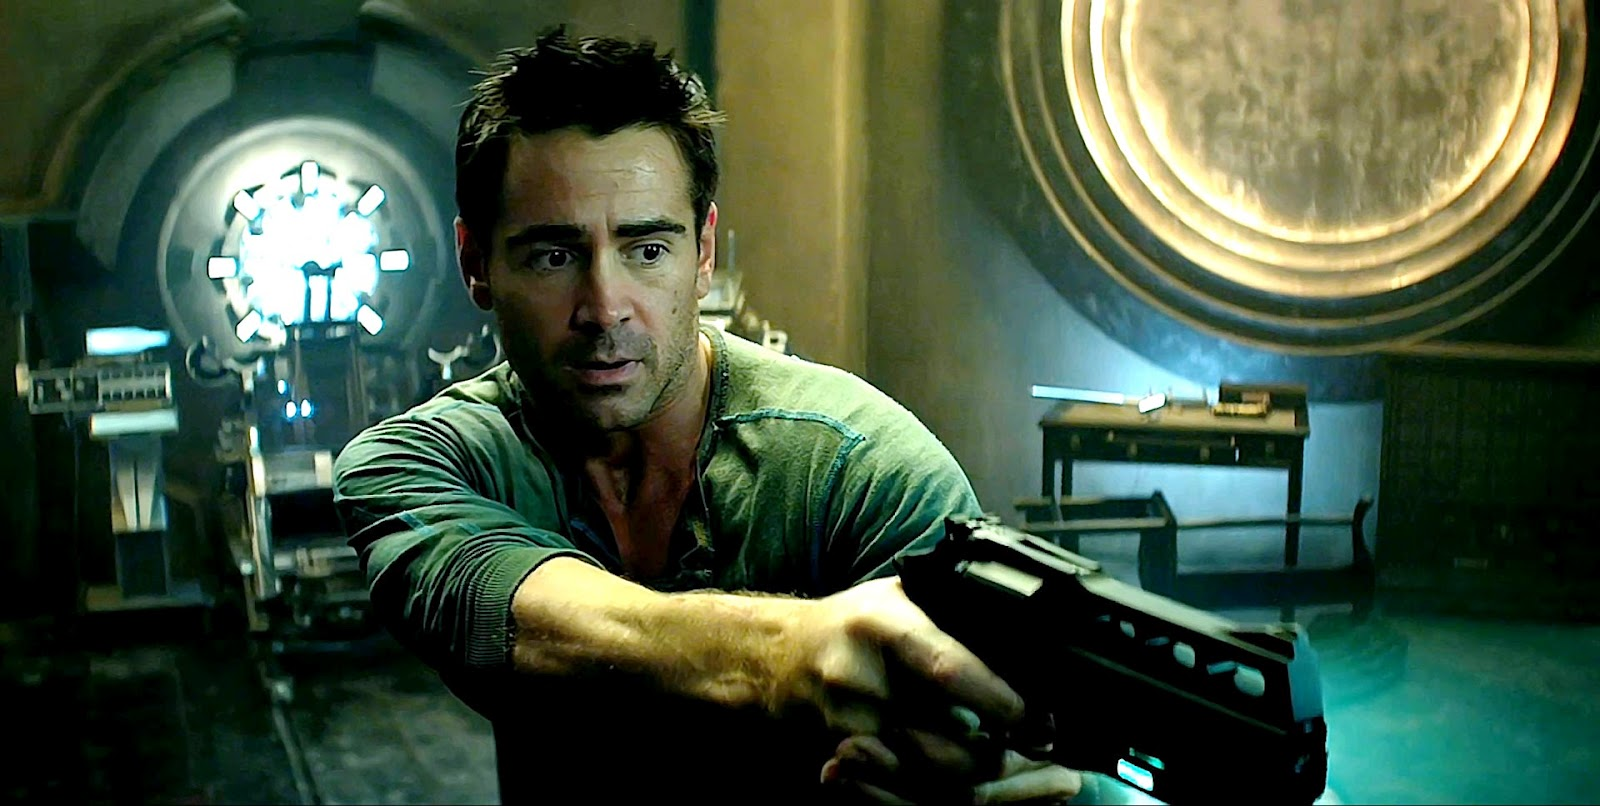 BADBOYS DELUXE: TOTAL RECALL: MOVIE REMAKE WITH COLIN FARRELL